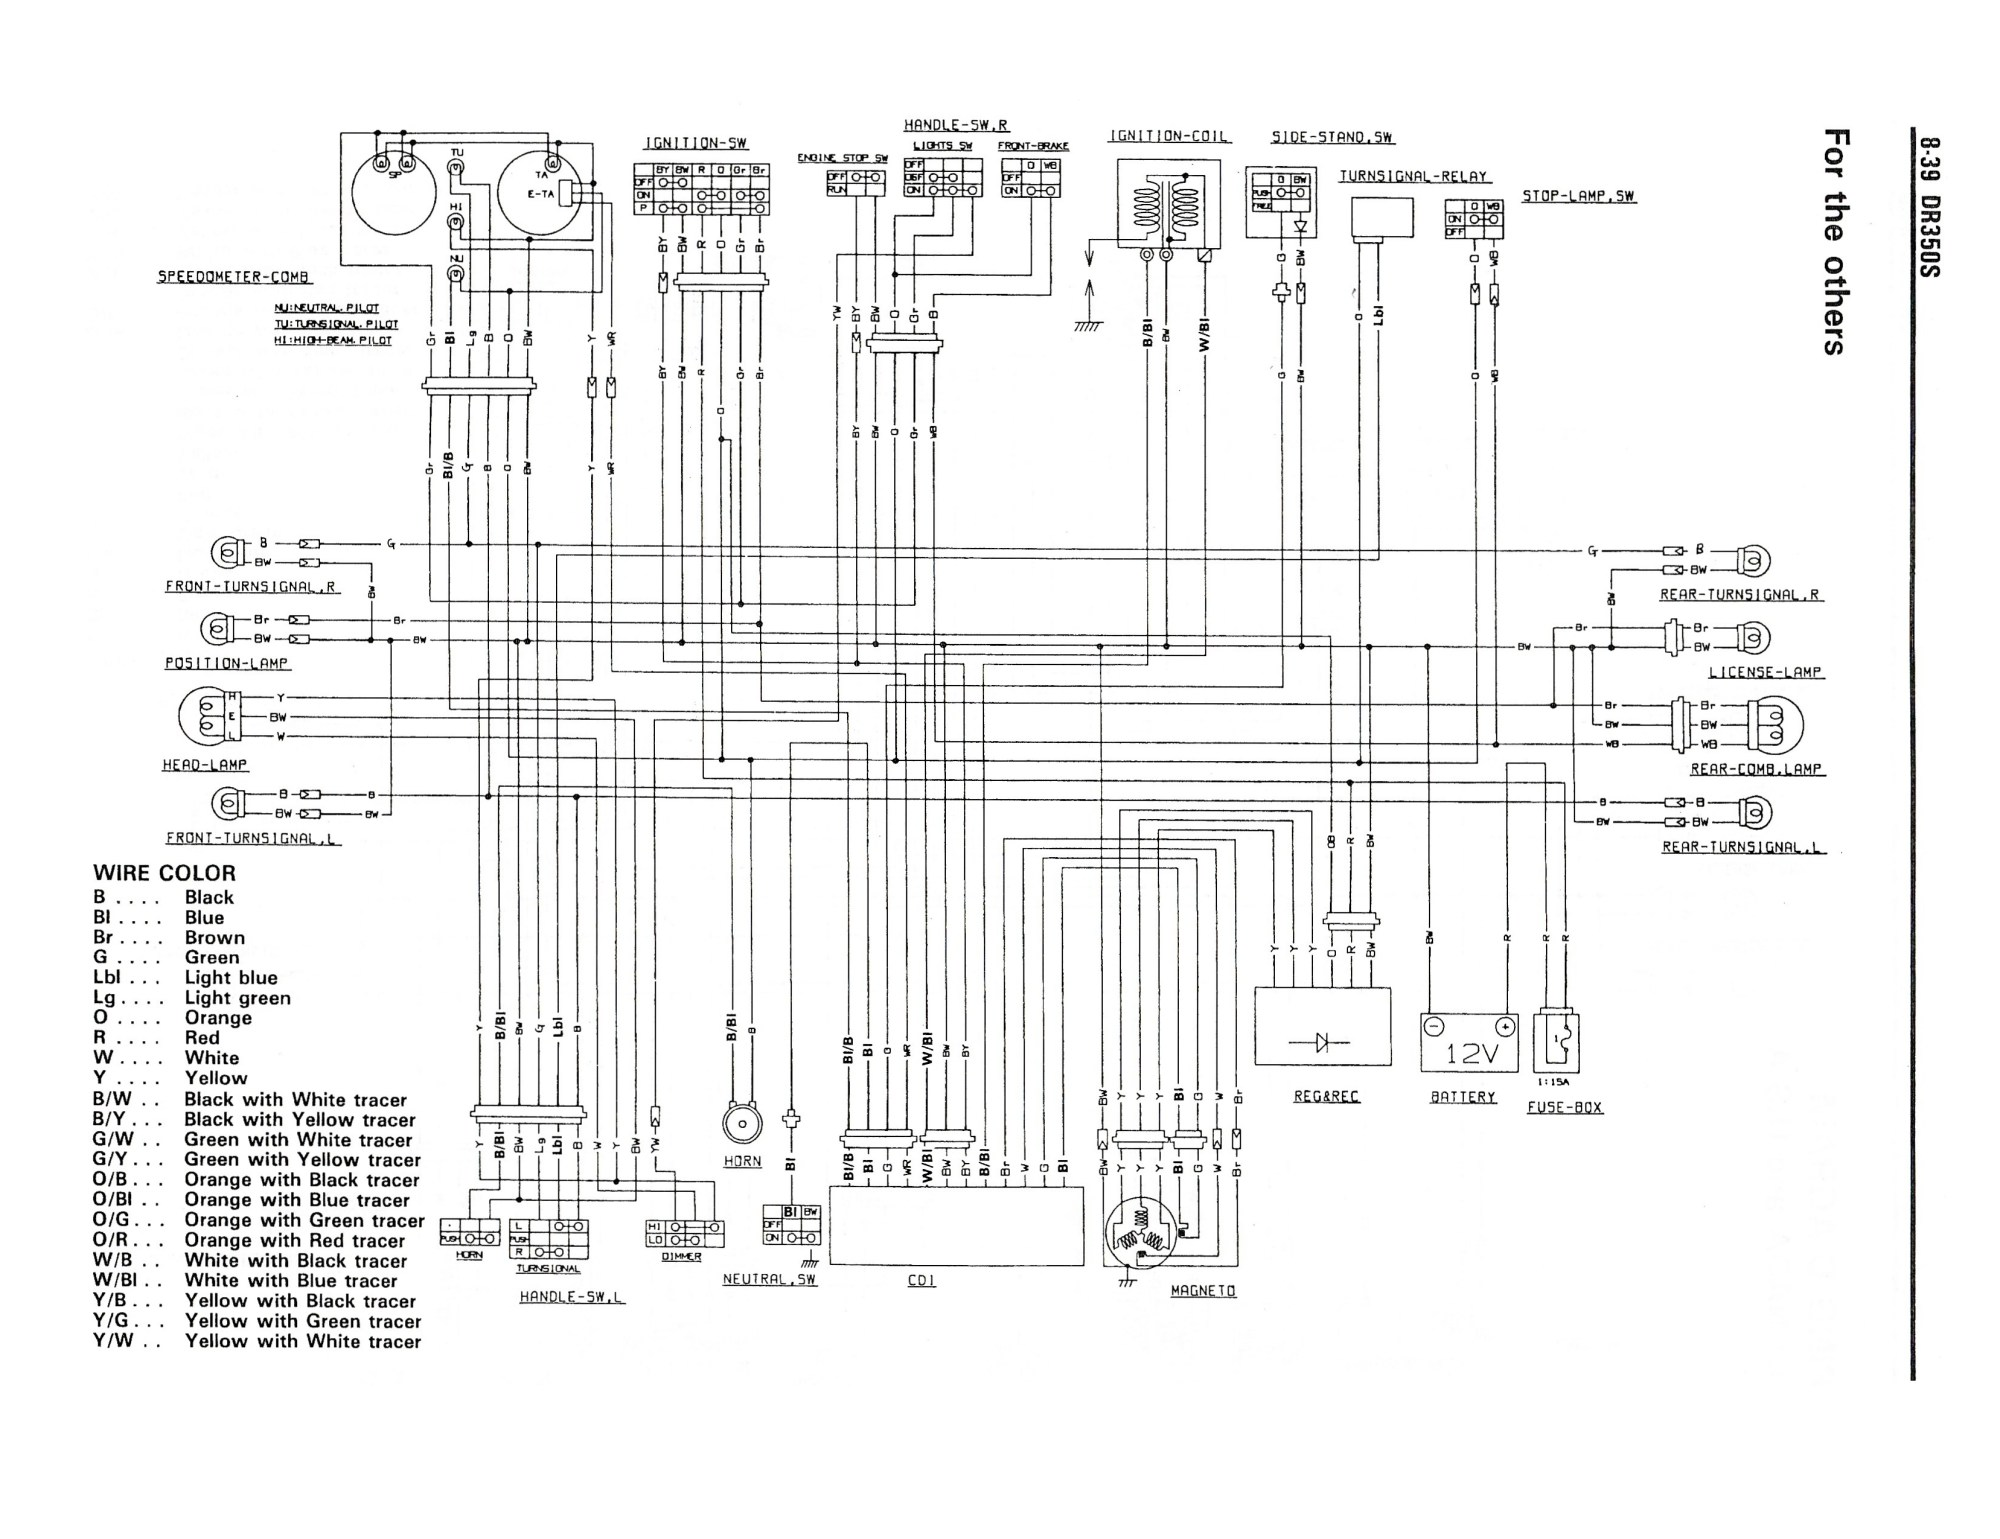 hight resolution of wiring diagram 1993 dr 350 wiring diagram inside diagram of suzuki motorcycle parts 1993 dr350s wiring harness diagram